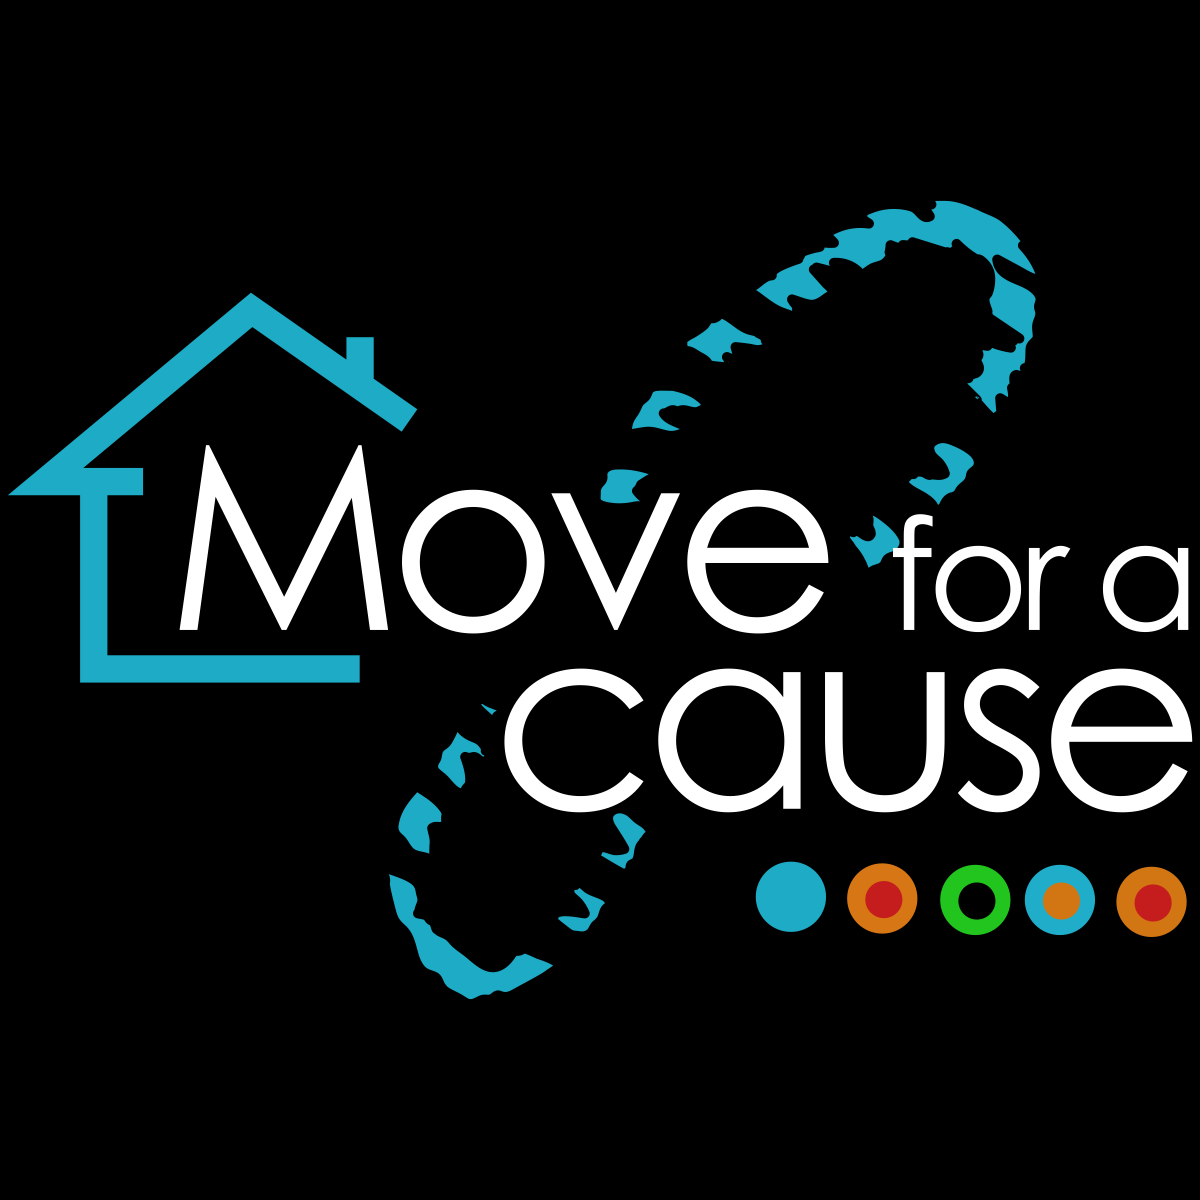 Move for a cause